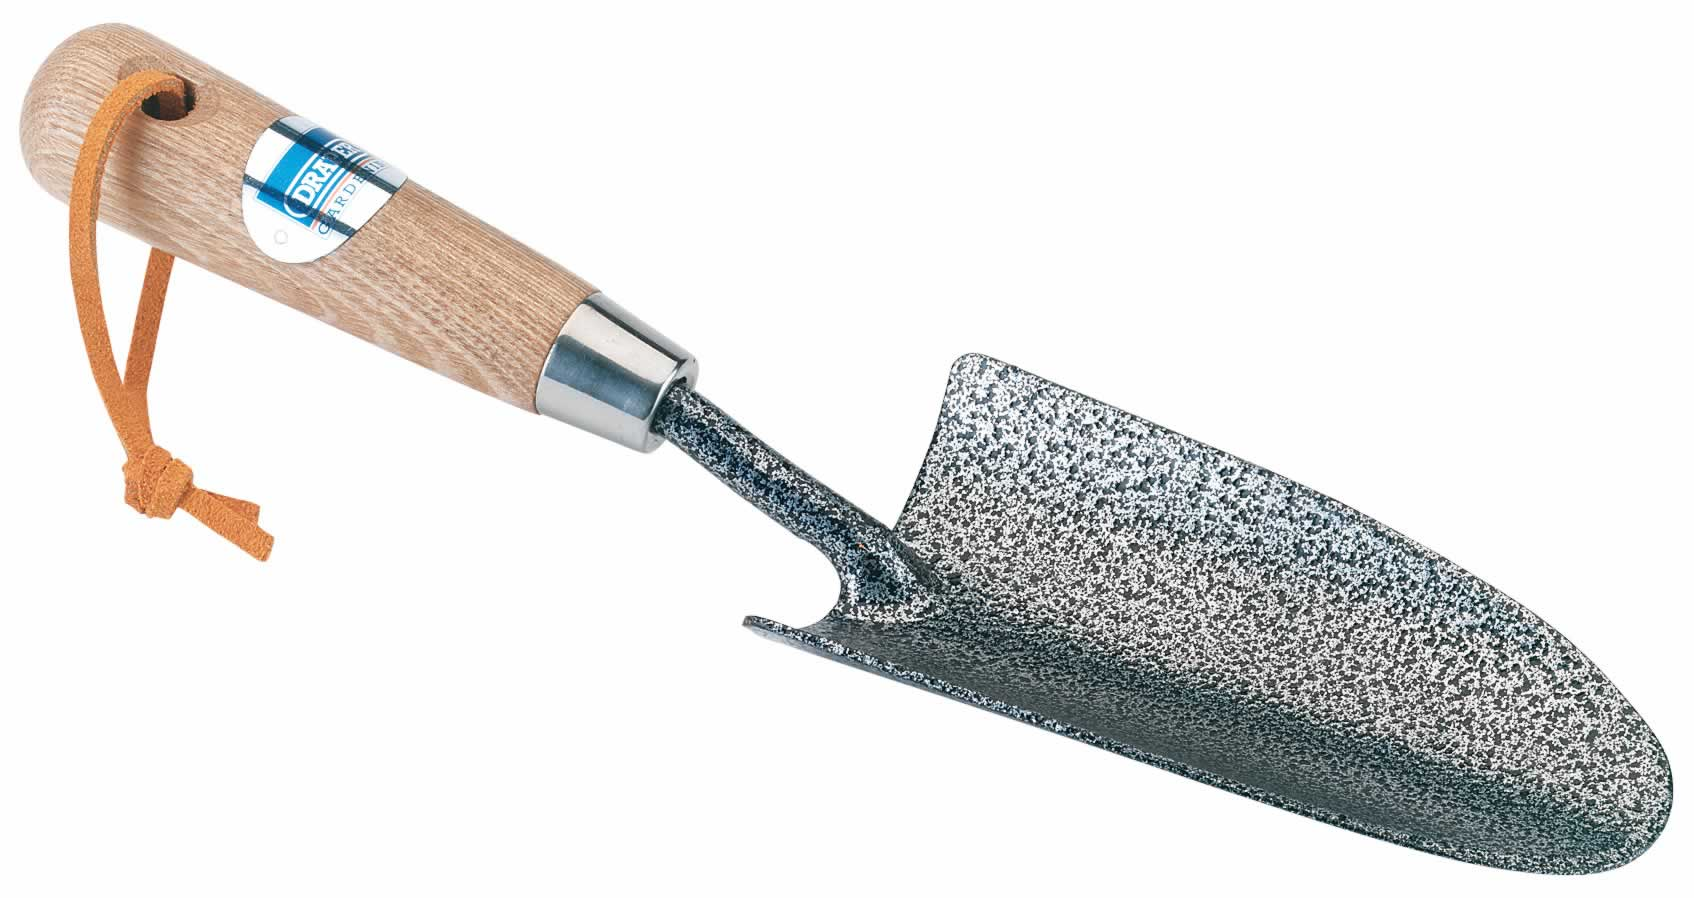 CARBON STEEL HEAVY DUTY HAND TROWEL ASH HANDLE